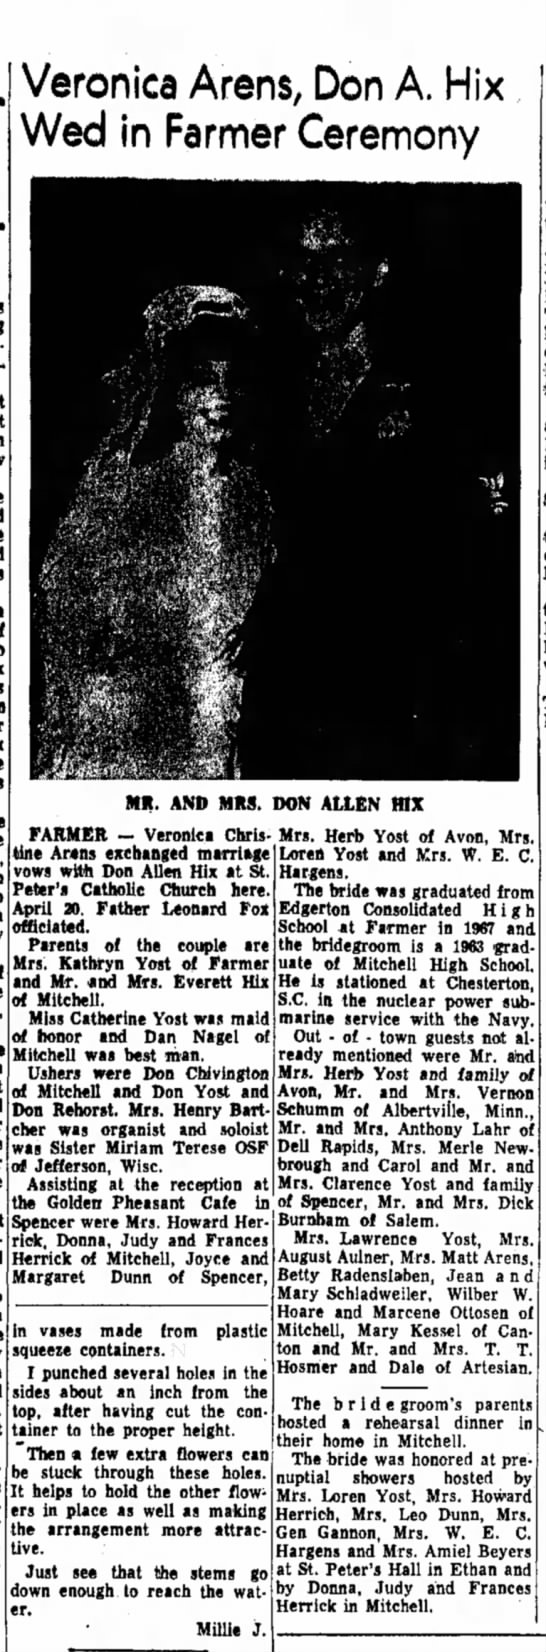 veronica arens wedding daily republican mitchell 2 may 1968 page 6